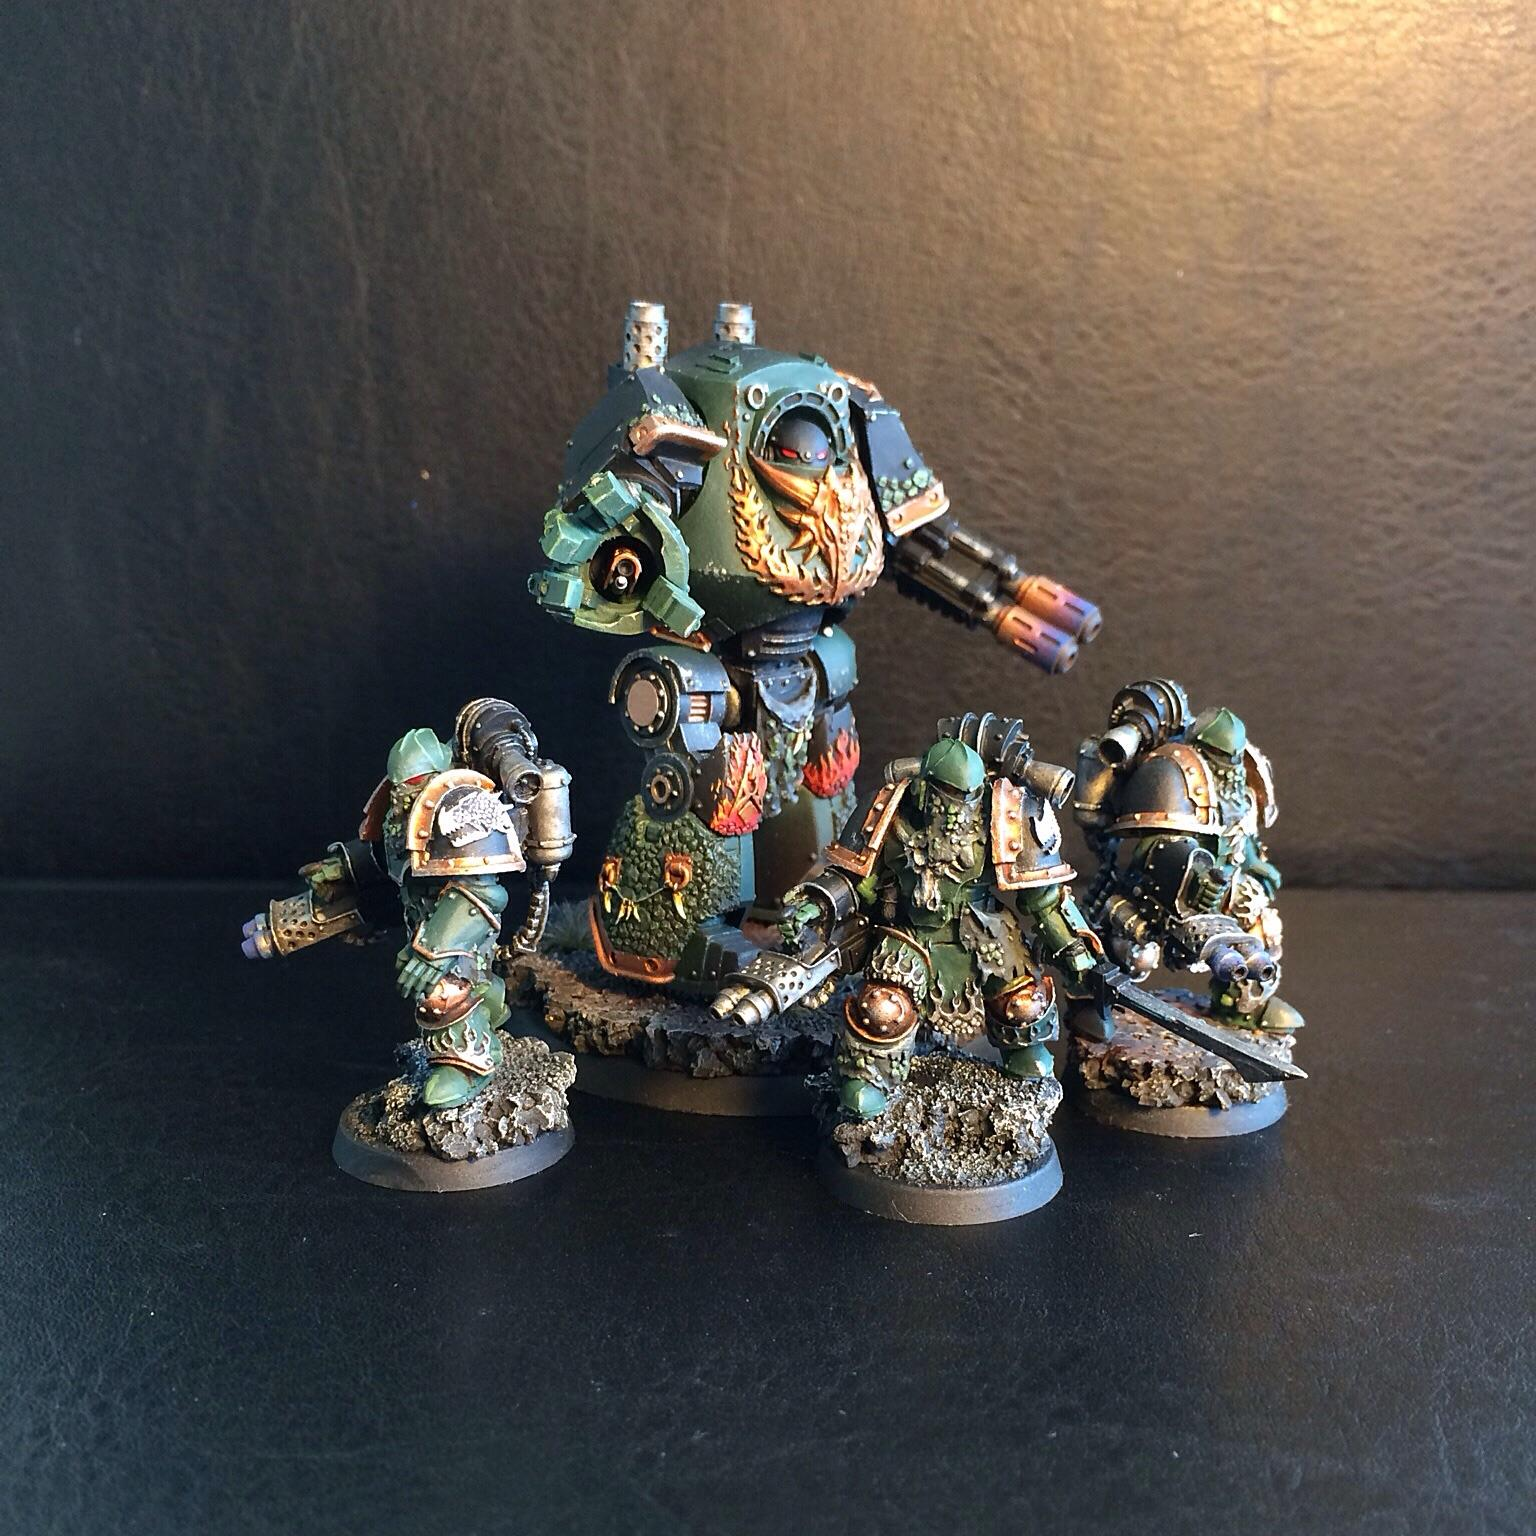 Firedrakes, Forge World, Horus Heresy, Primarch, Pyroclasts, Salamanders, Vulkan, Warhammer 40,000